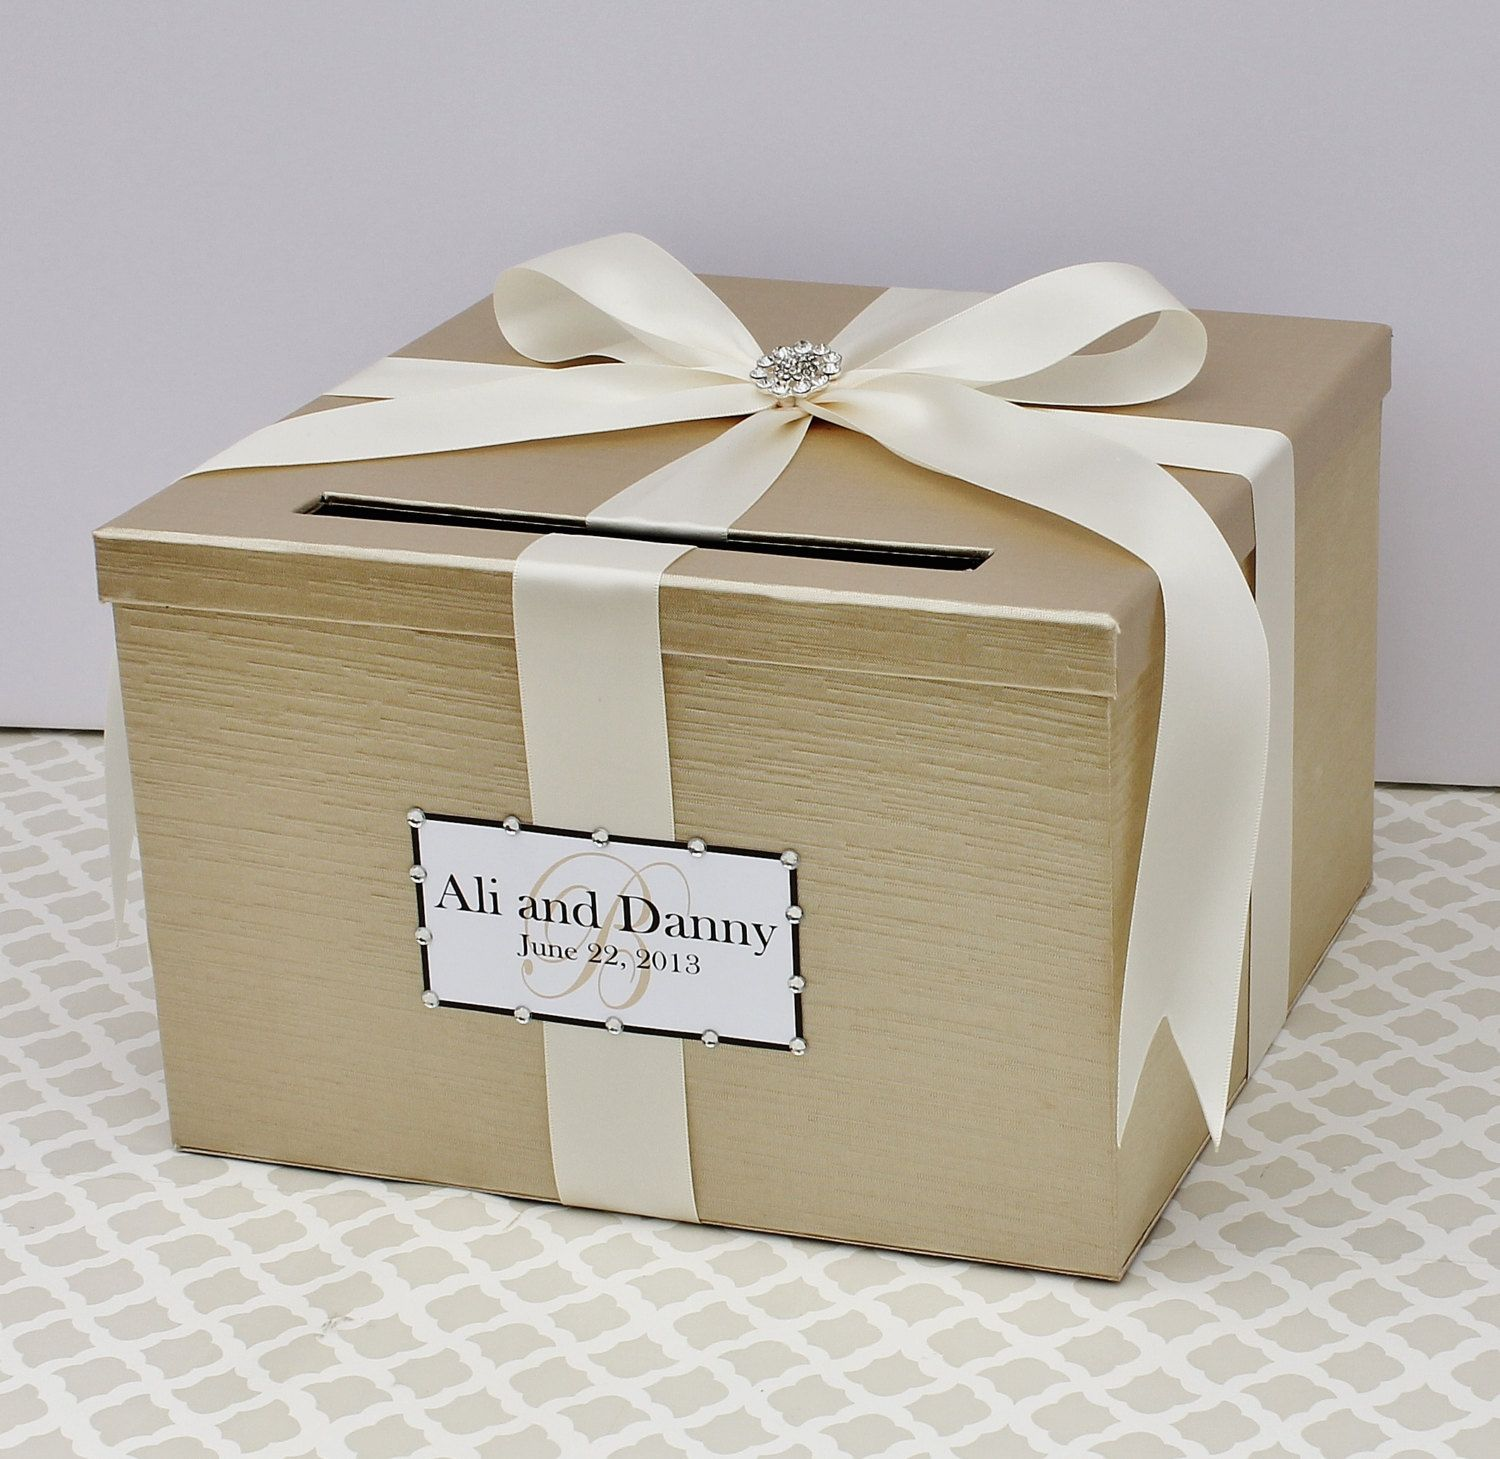 Wedding Card Box Champagne Gold Ivory Money Holder by LittleDivine – Wedding Box for Cards